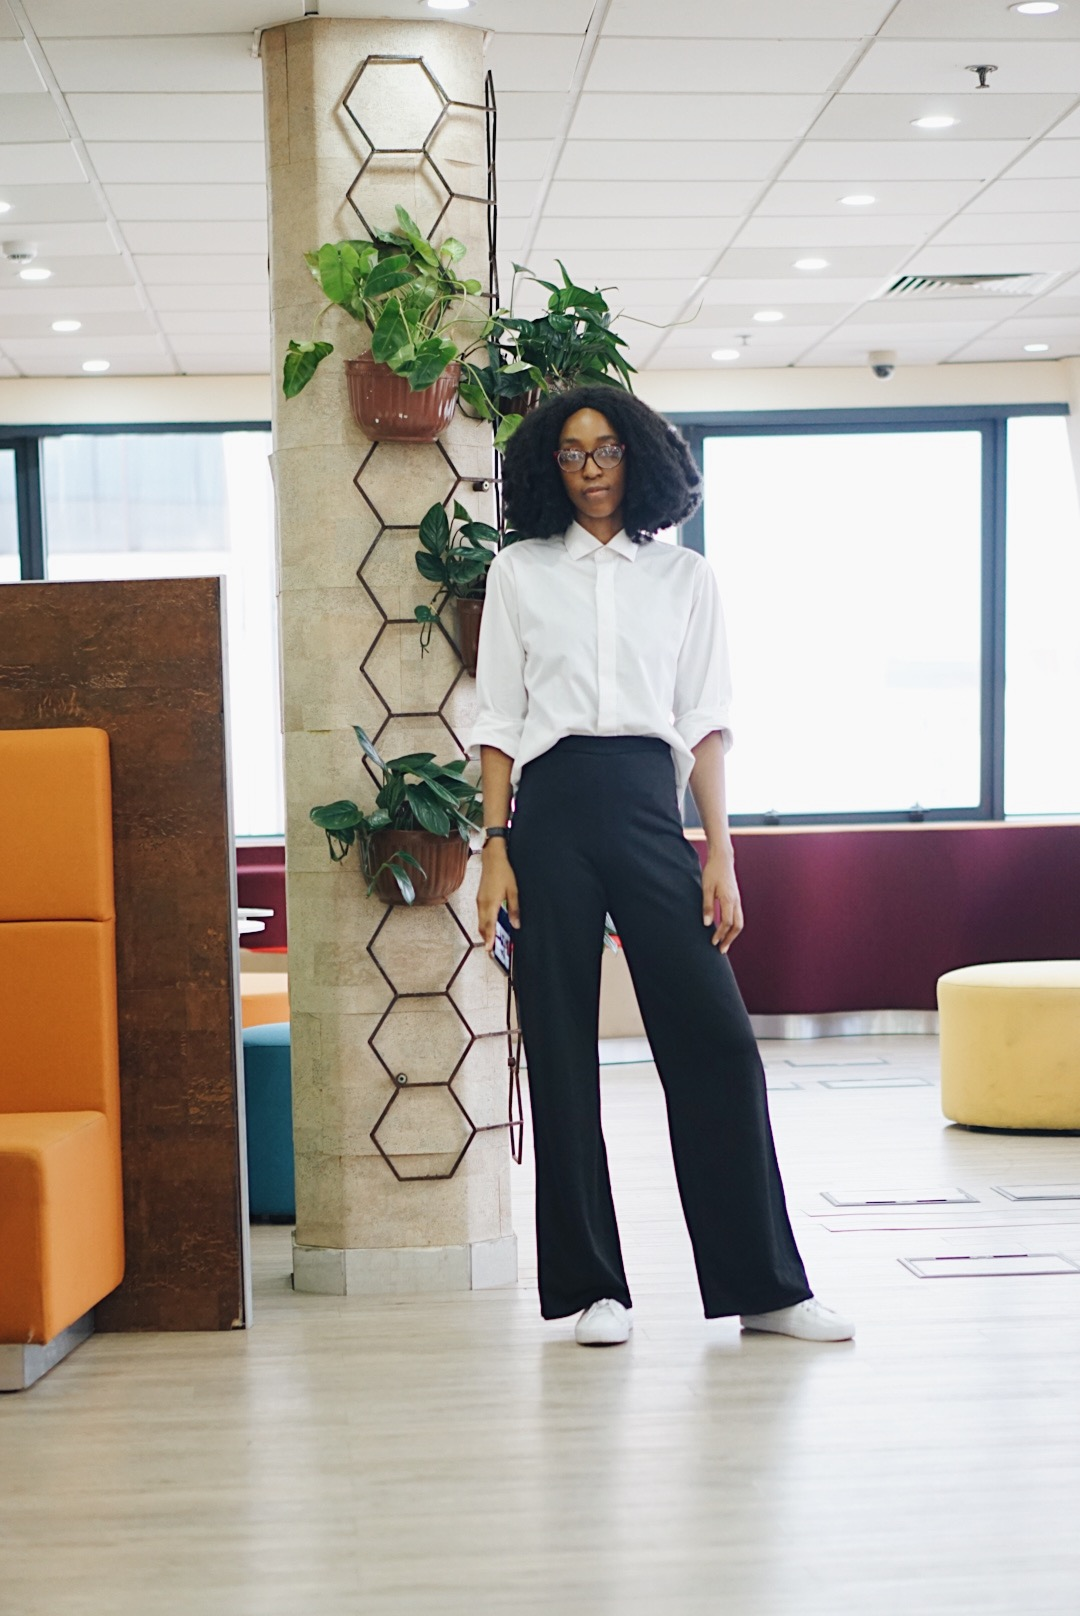 Cassie daves in monochrome outfit - work style inspiration